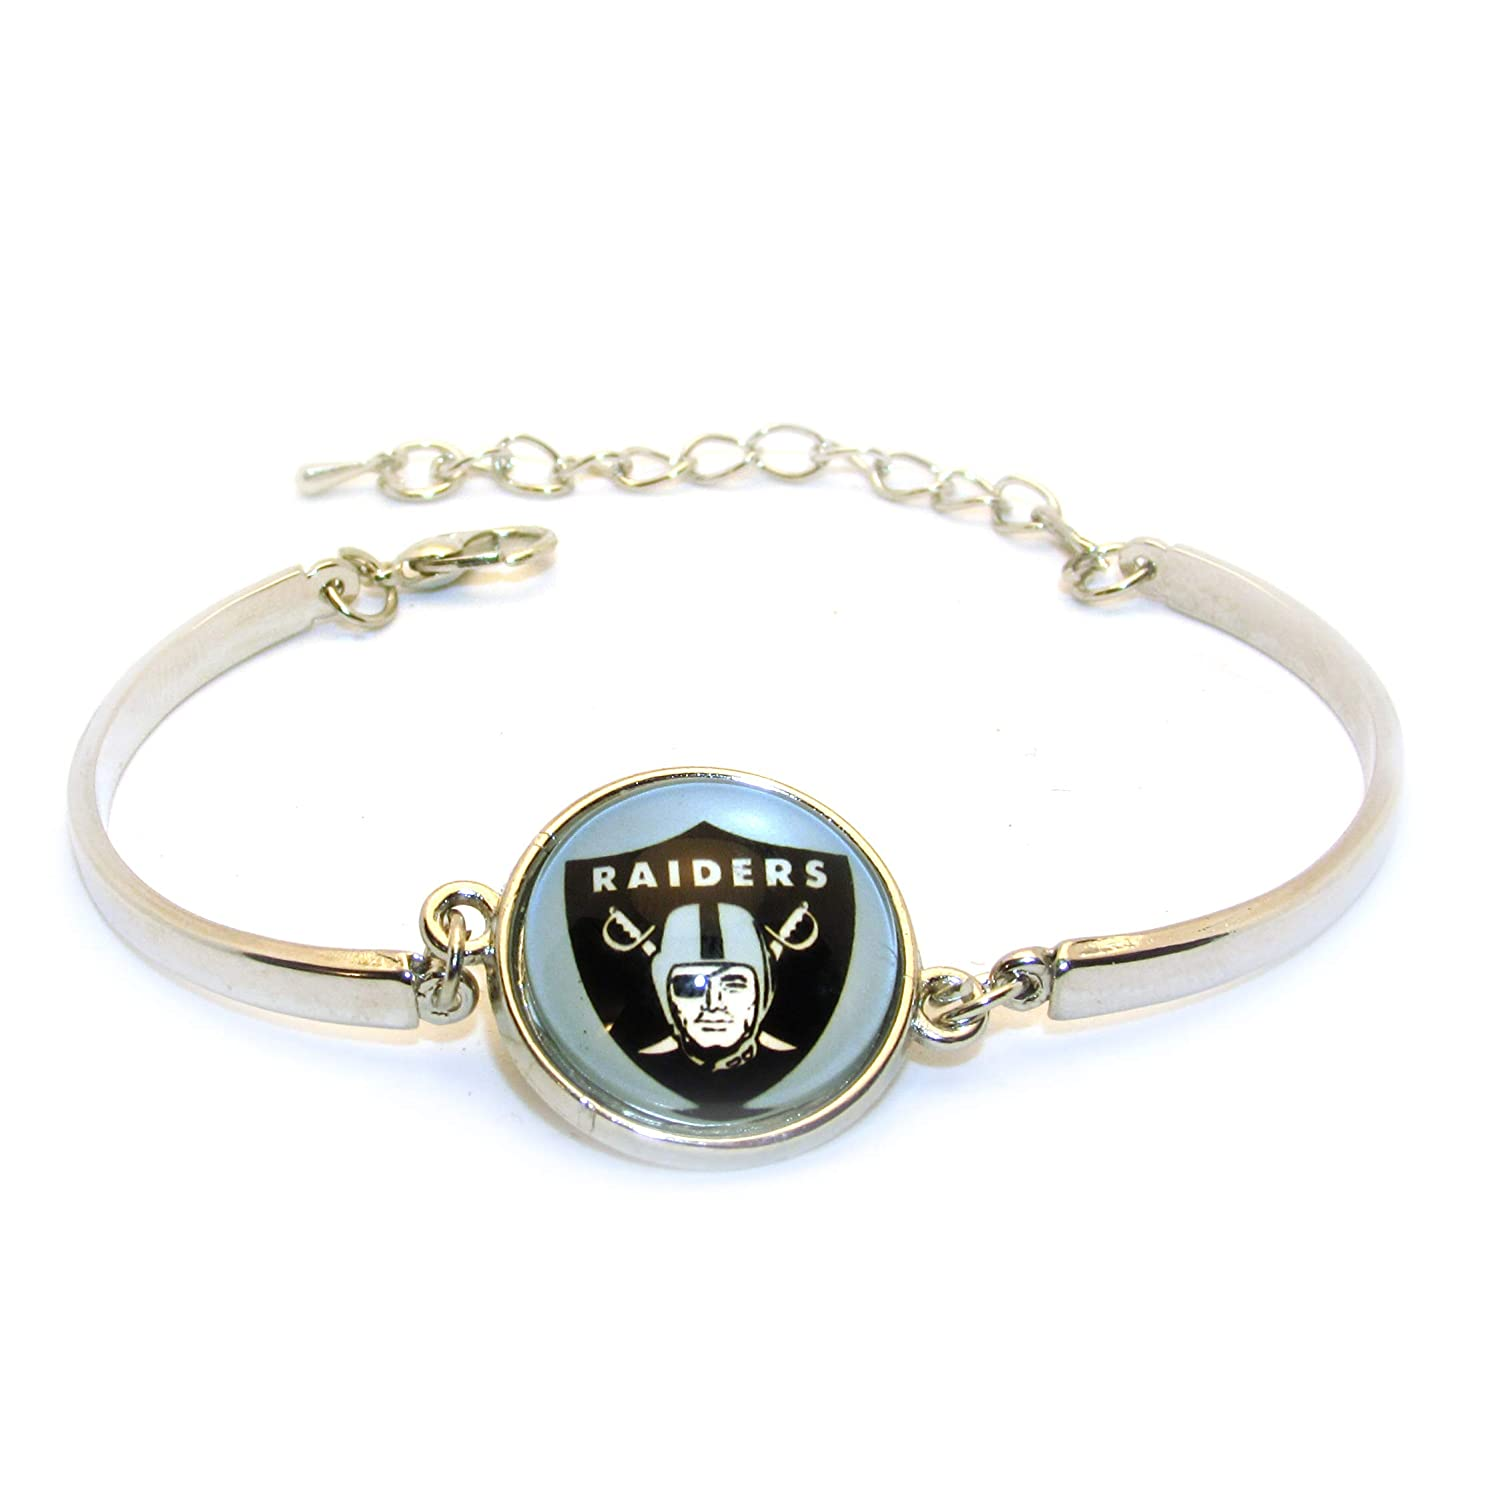 Swamp Fox Oakland Raiders Metal Charm Bangle Bracelet with Adjustable Chain 7 to 8